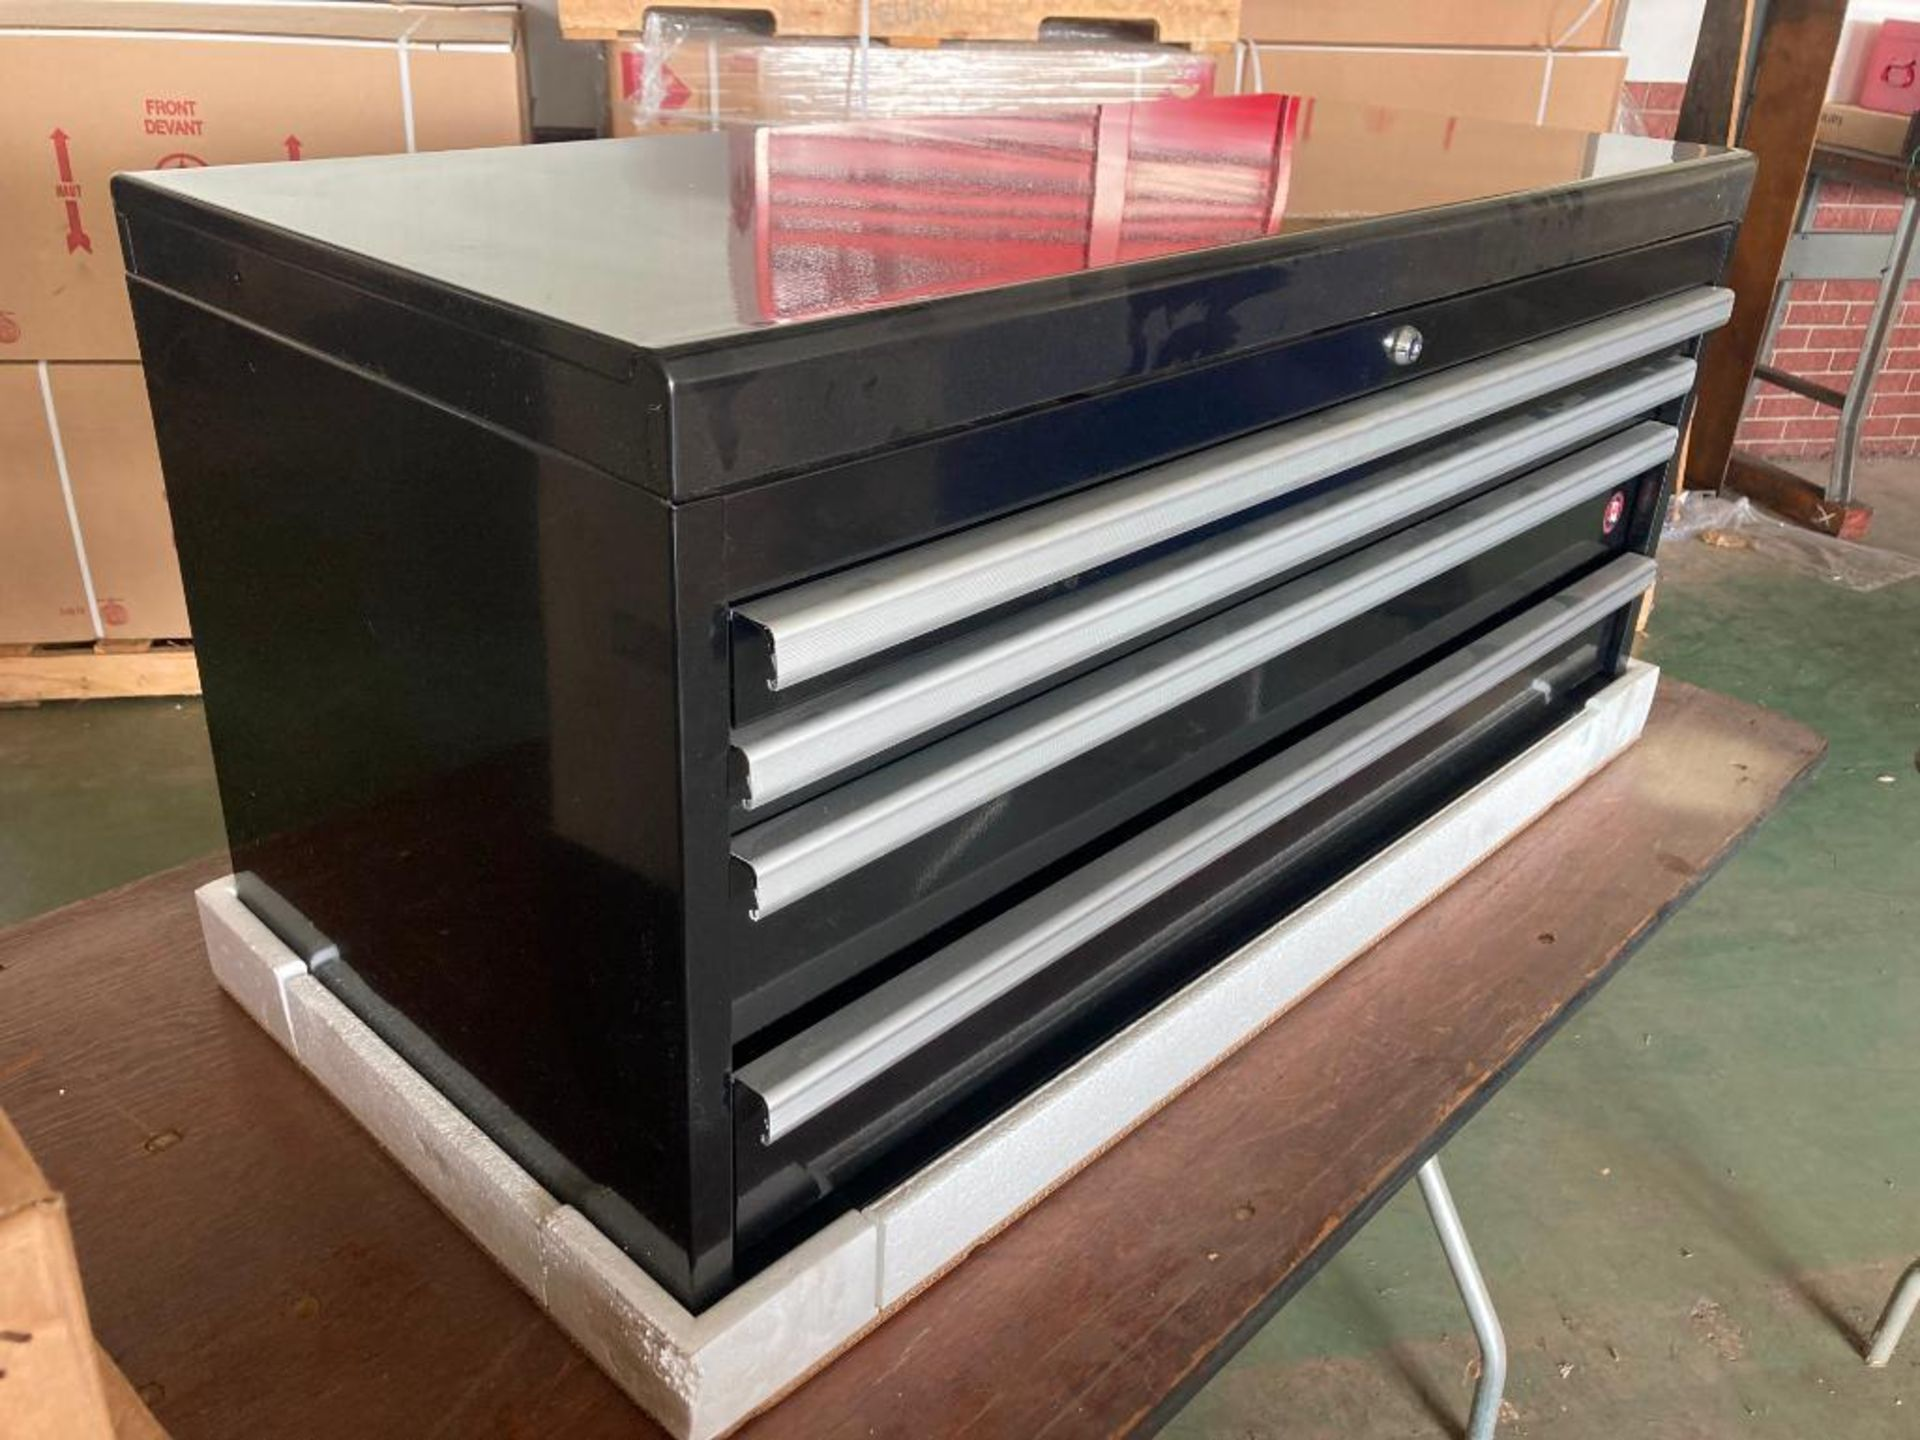 (NEW) INTERNATIONAL 4-DRAWER; TOP TOOL CHEST; 40'' X 18''; BLACK - Image 2 of 2